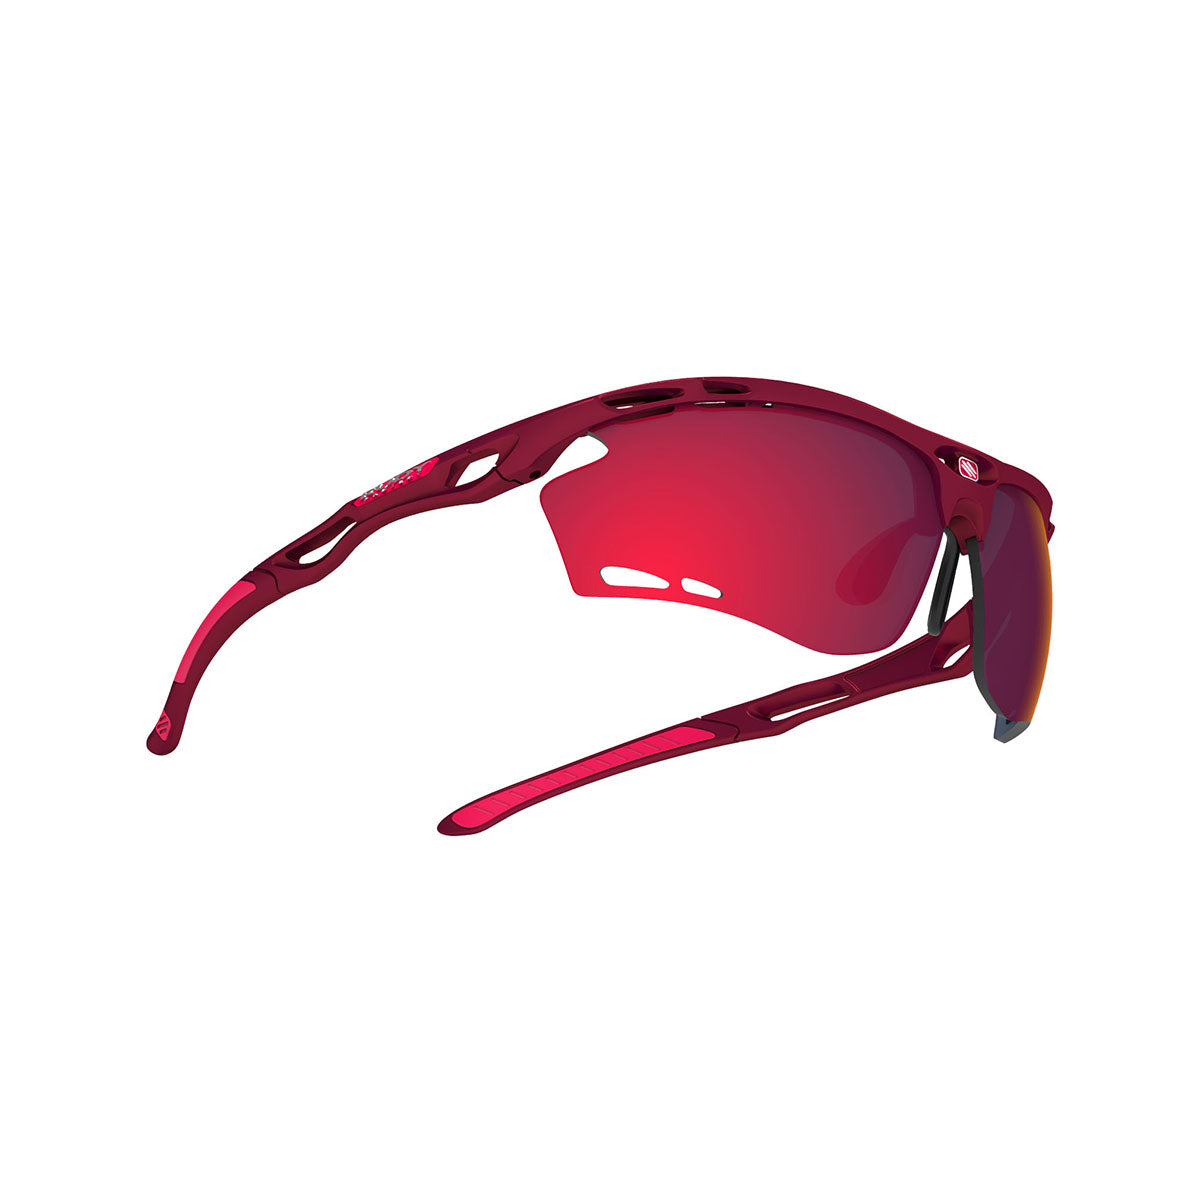 Rudy Project - Propulse - frame color: Merlot Matte - lens color: Multilaser Red - Bumper Color:  - photo angle: Bottom Front Angle Variant Hover Image